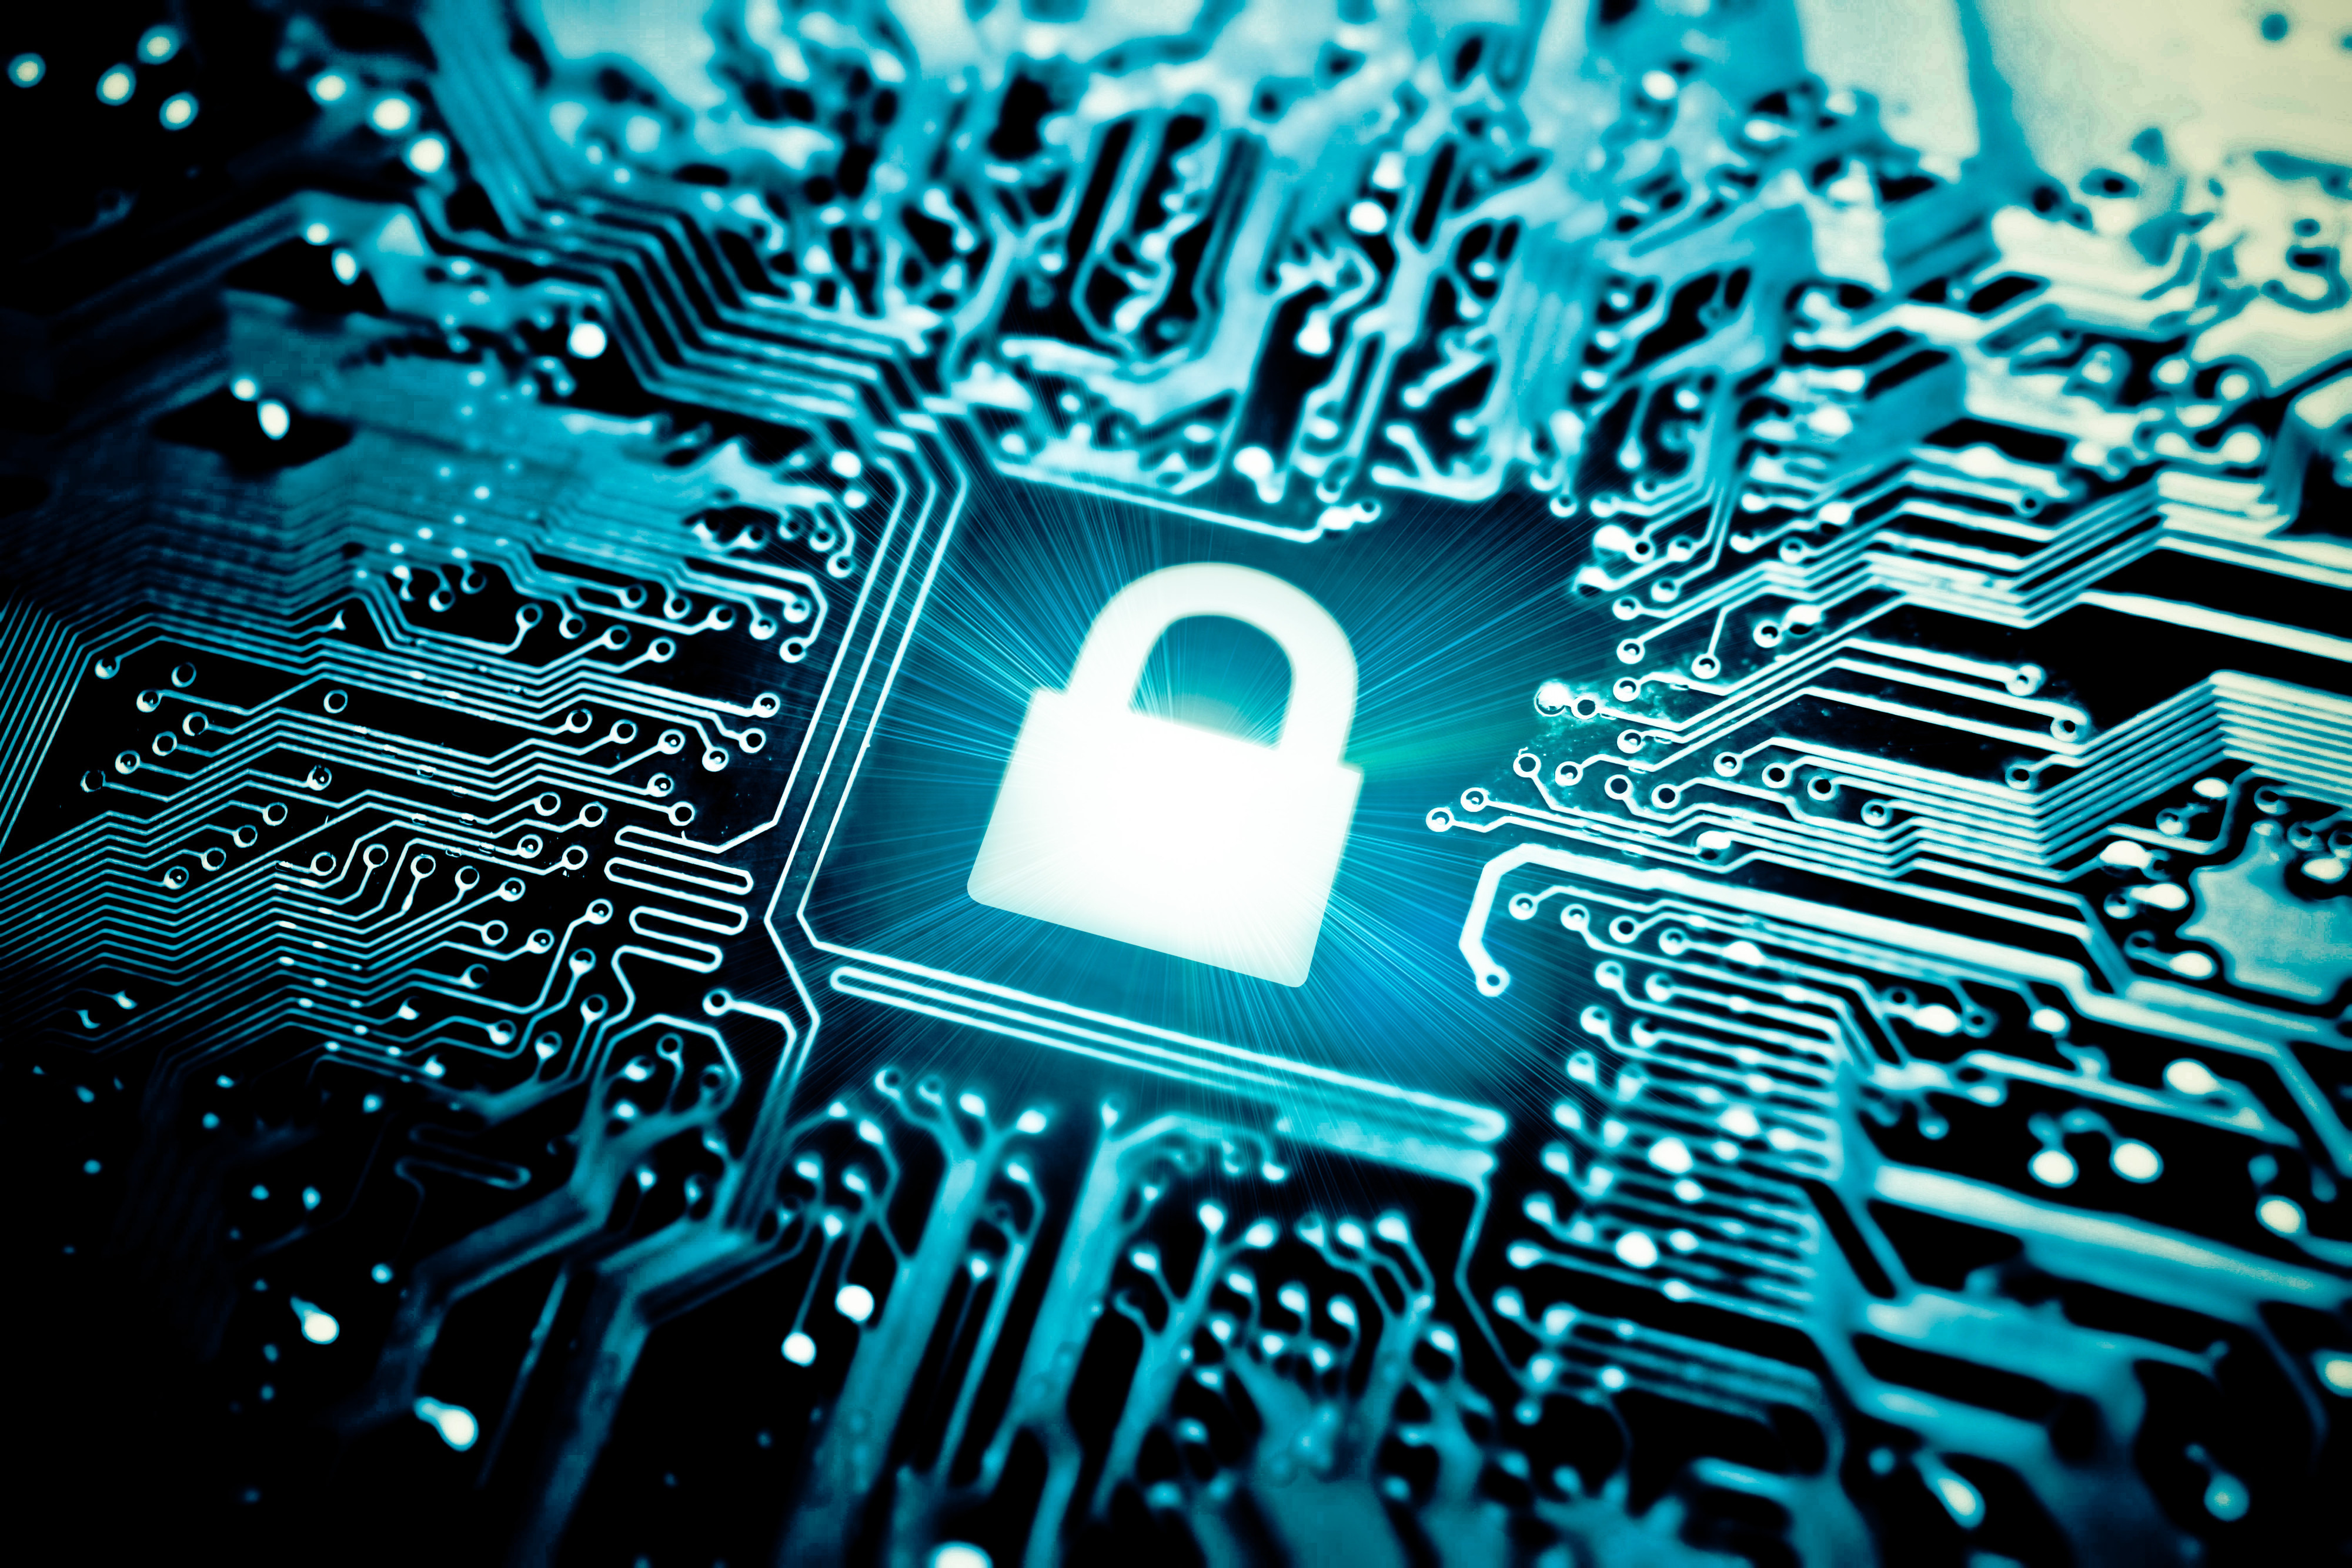 Data Privacy - How to protect your Devices and Passwords